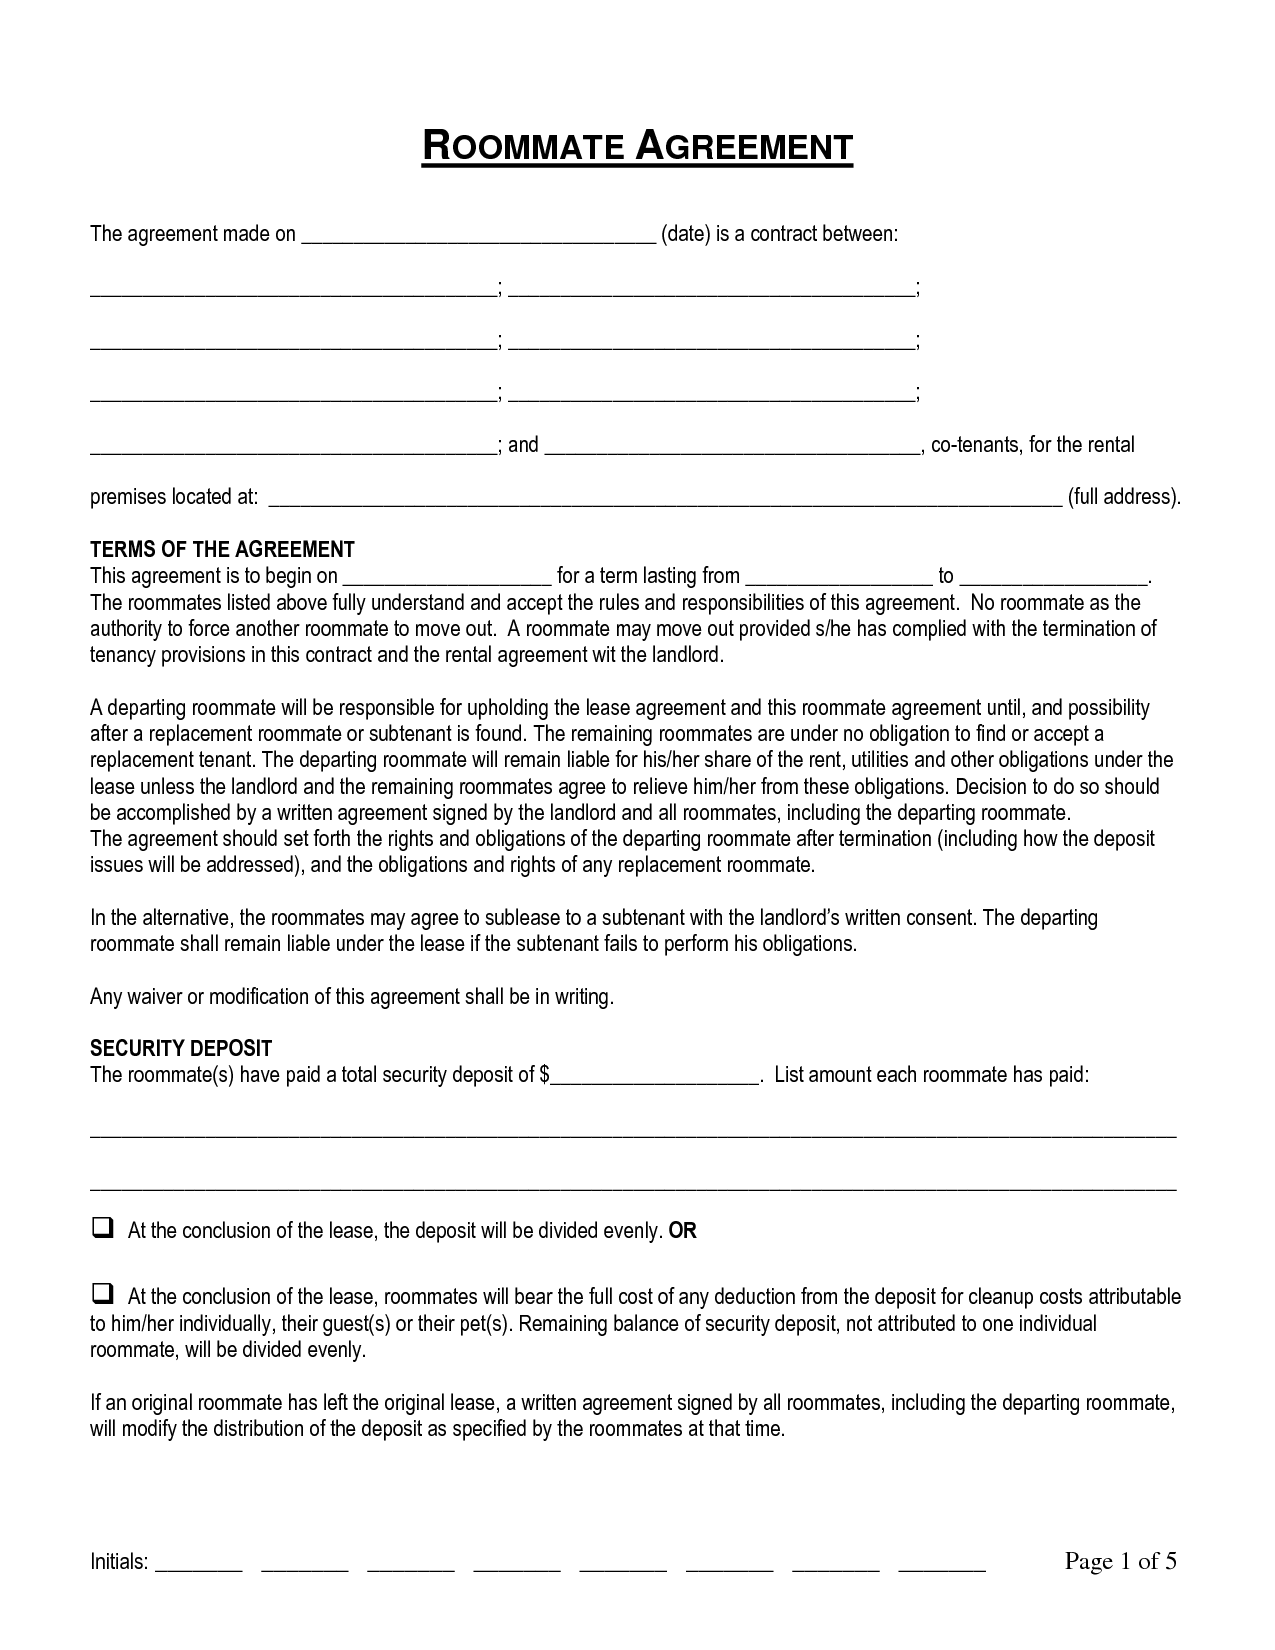 Termination Of Roommate Agreement By Pqo69567   Roommate Contract Agreement  Form